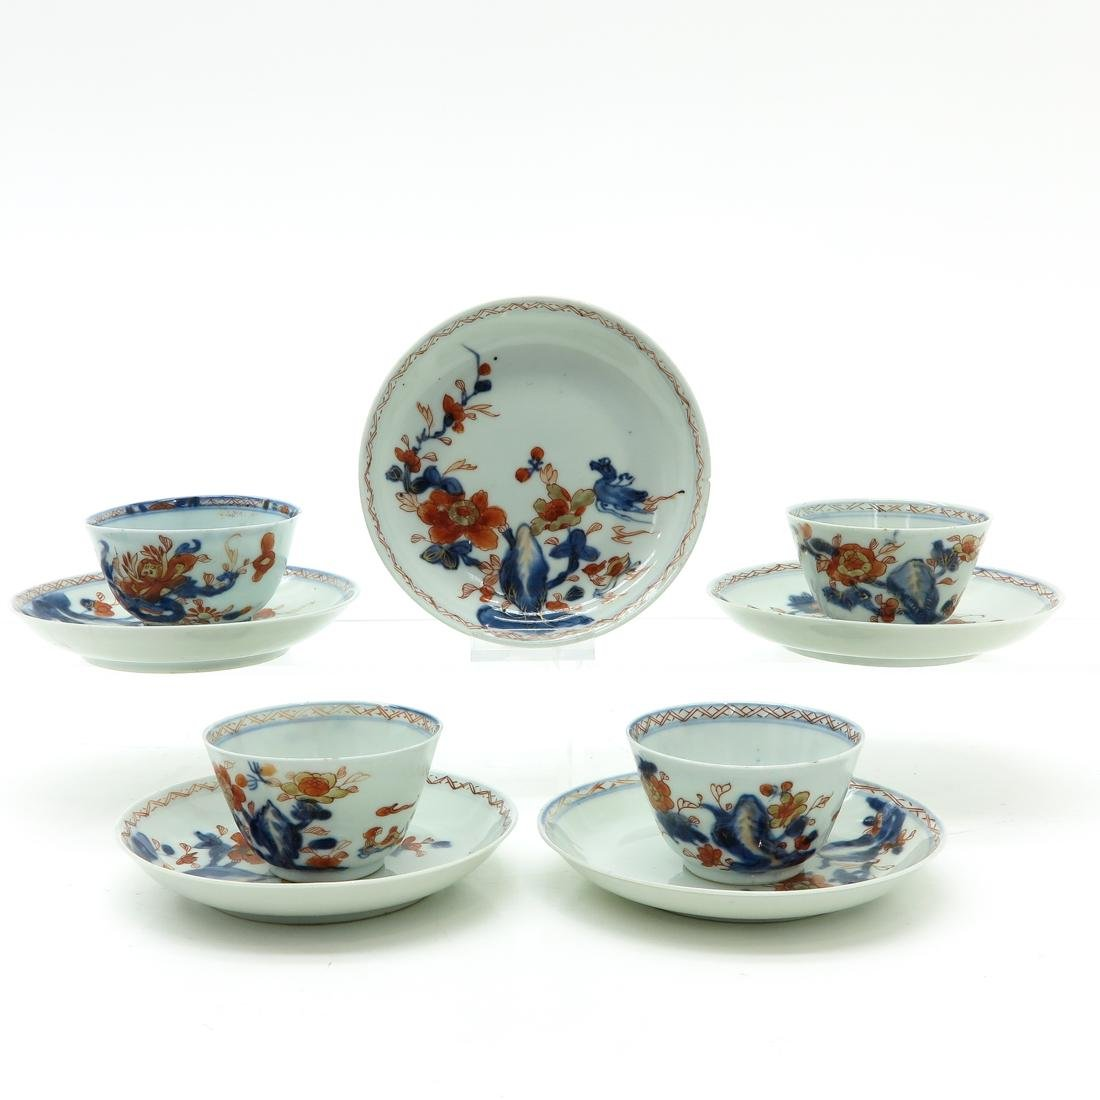 Set of Cups and Saucers